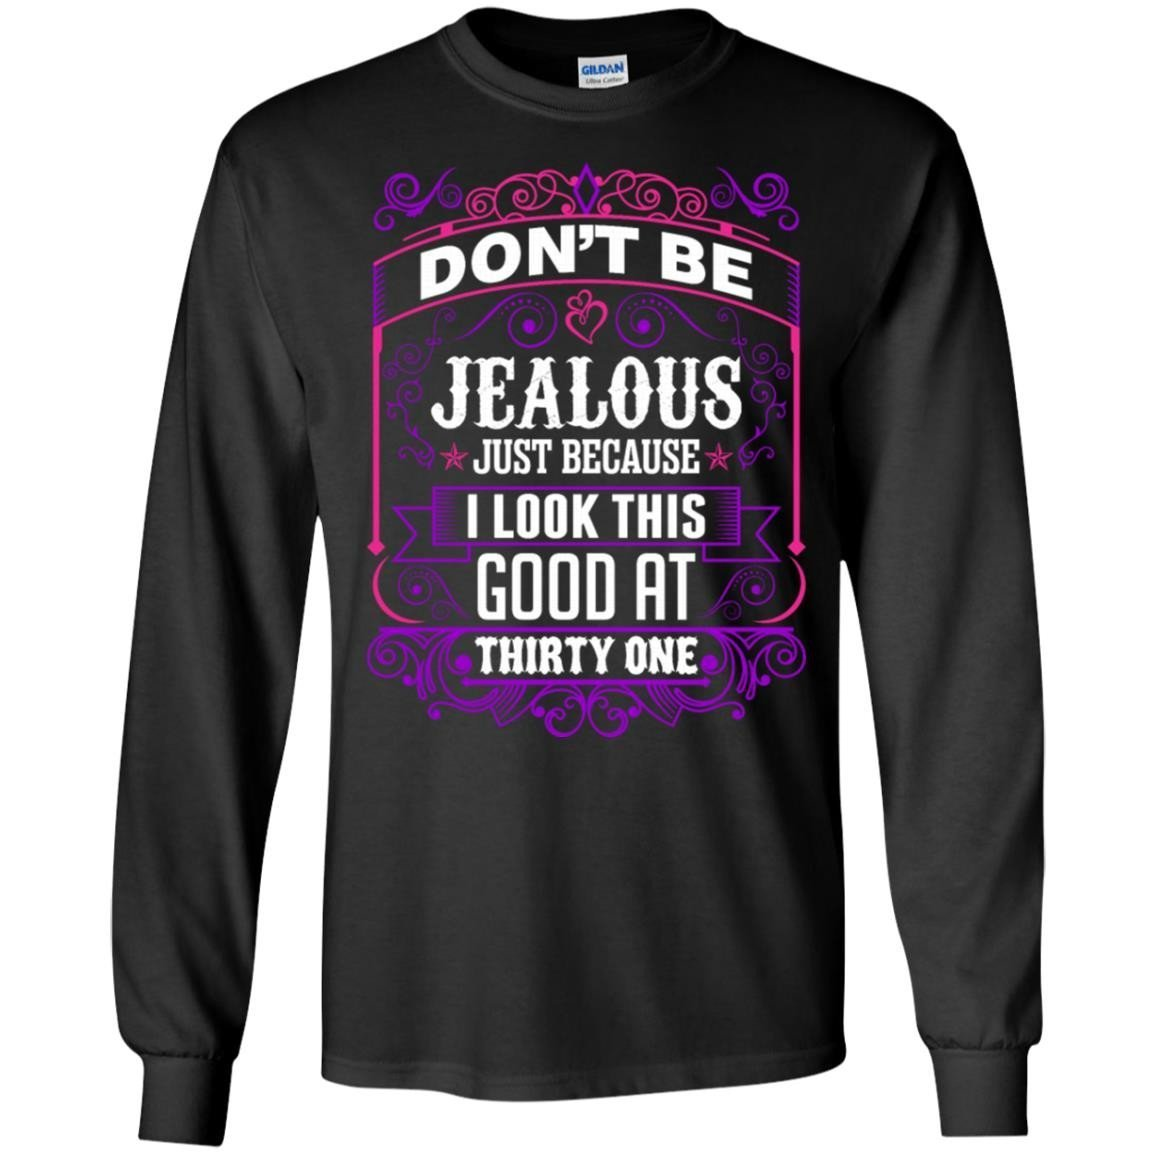 Dont Be Jealous Just Because I Look This Good At T 8 T-Shirt Long Sleeve 240